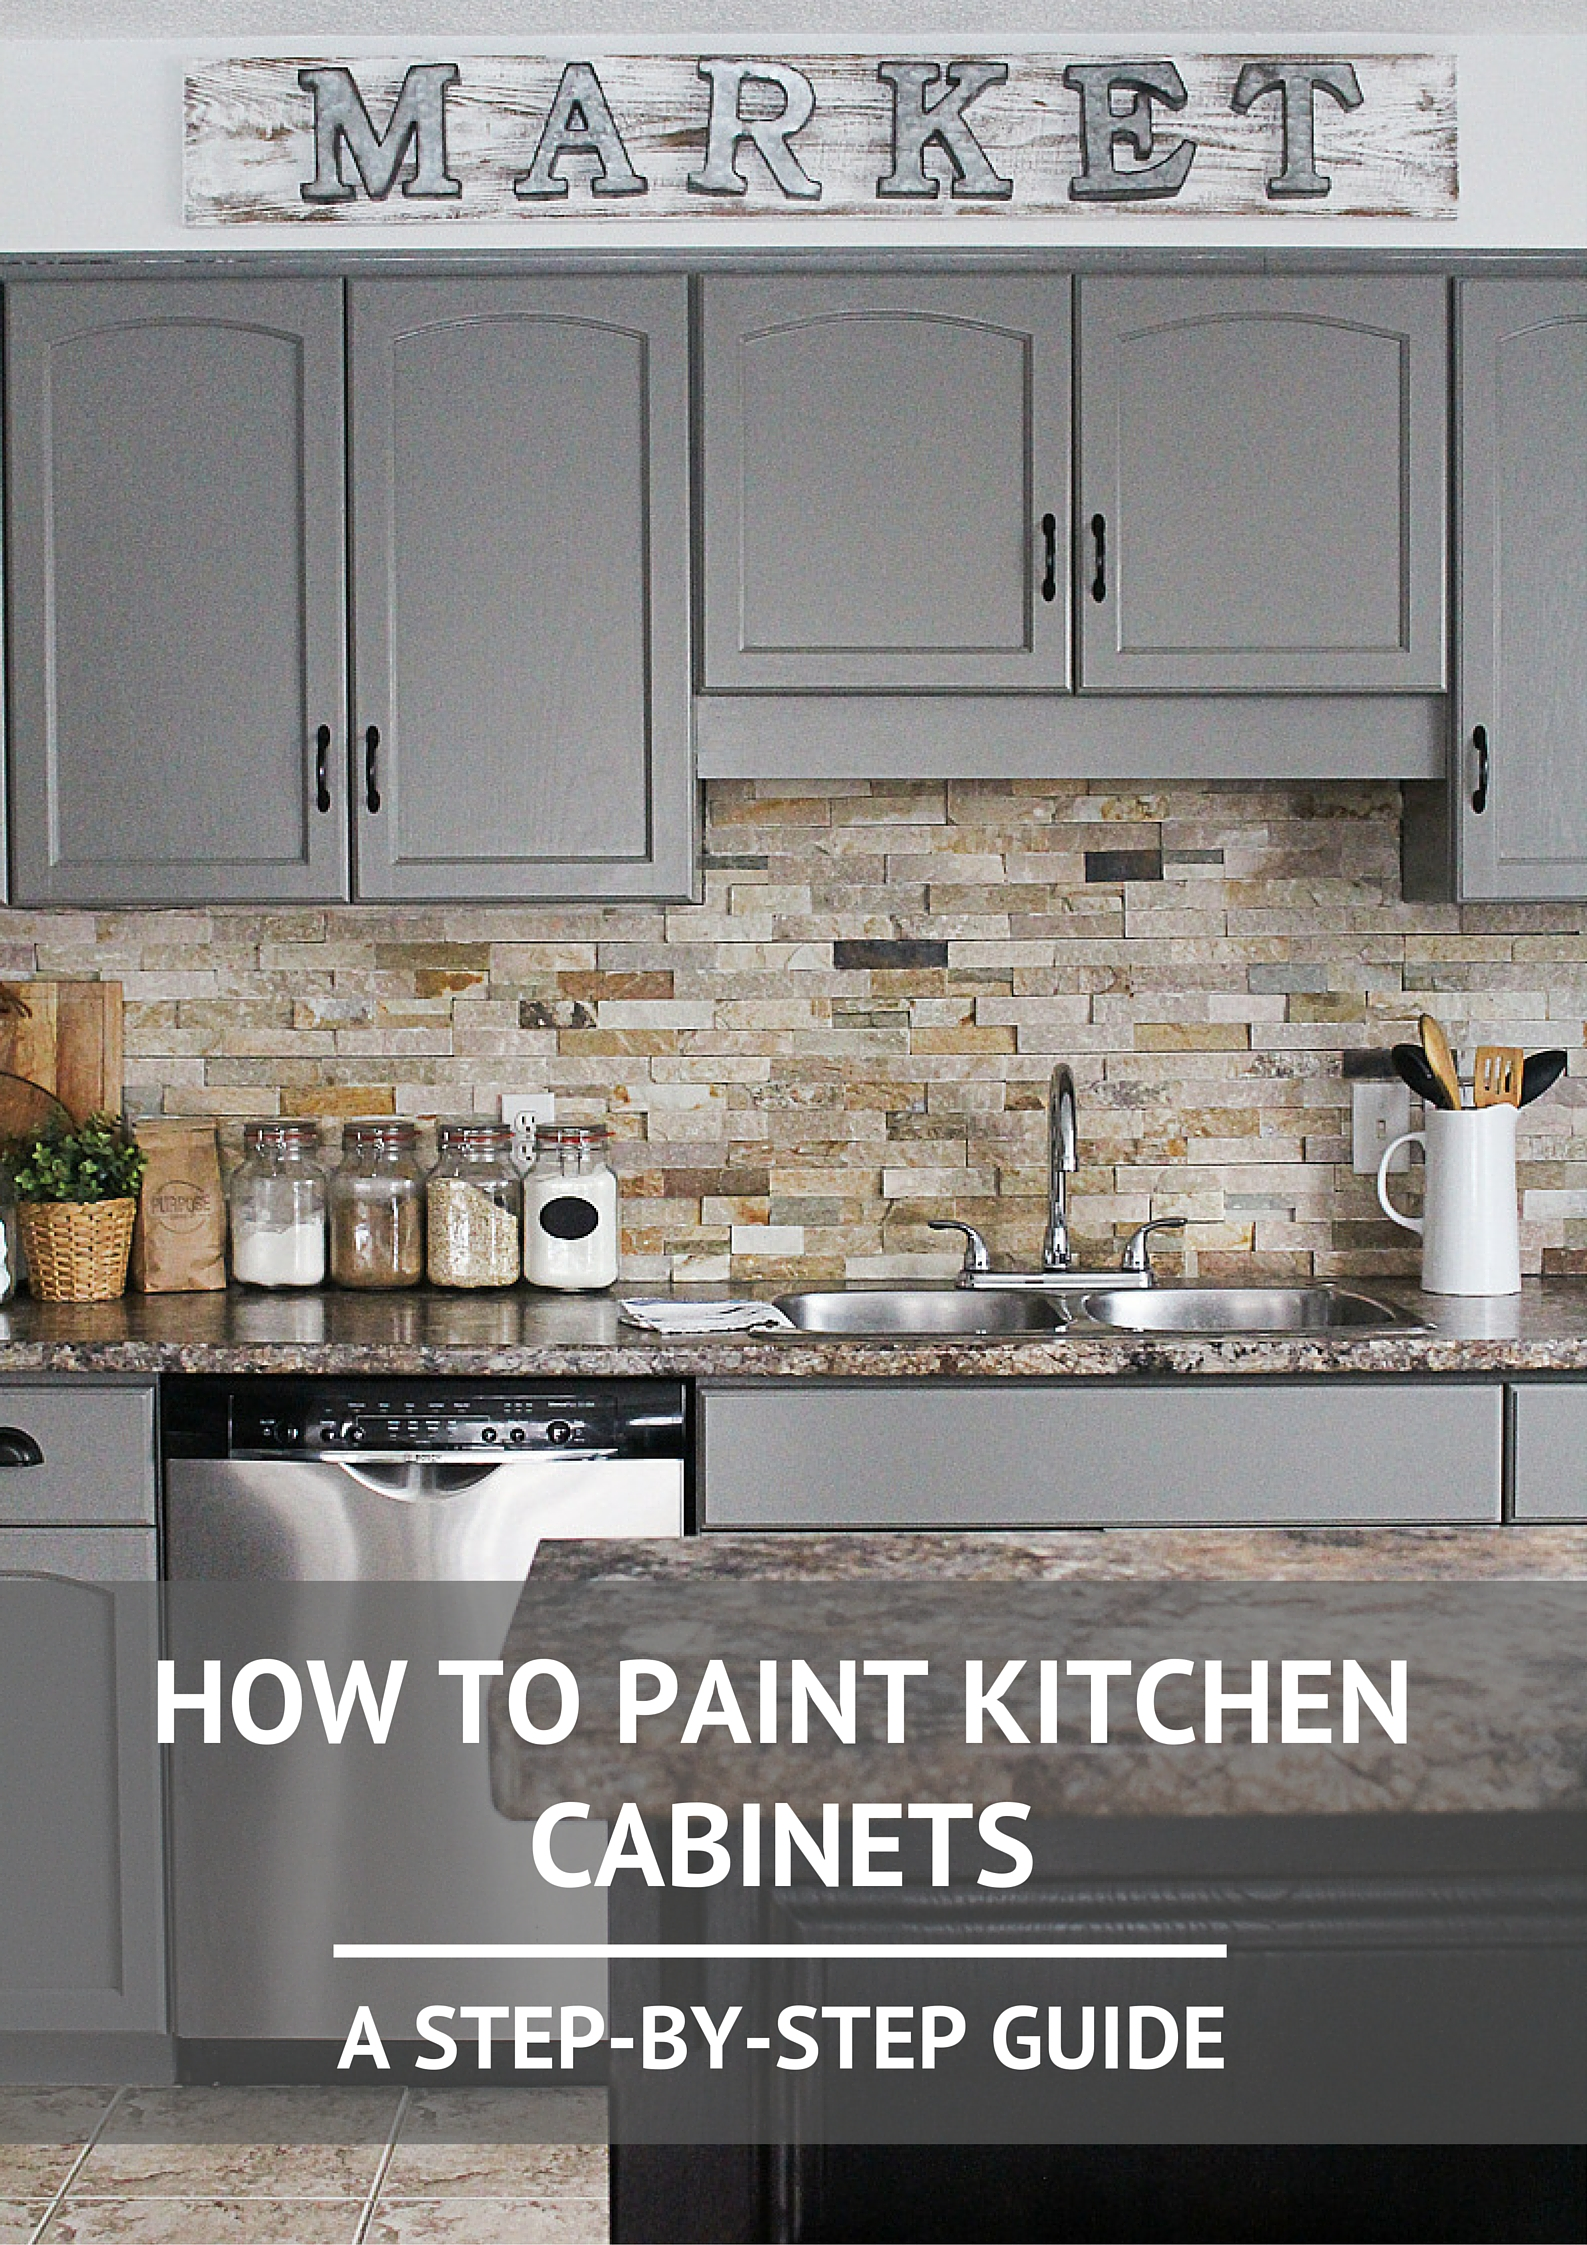 How To Paint Kitchen Cabinets - Which paint to use for kitchen cabinets